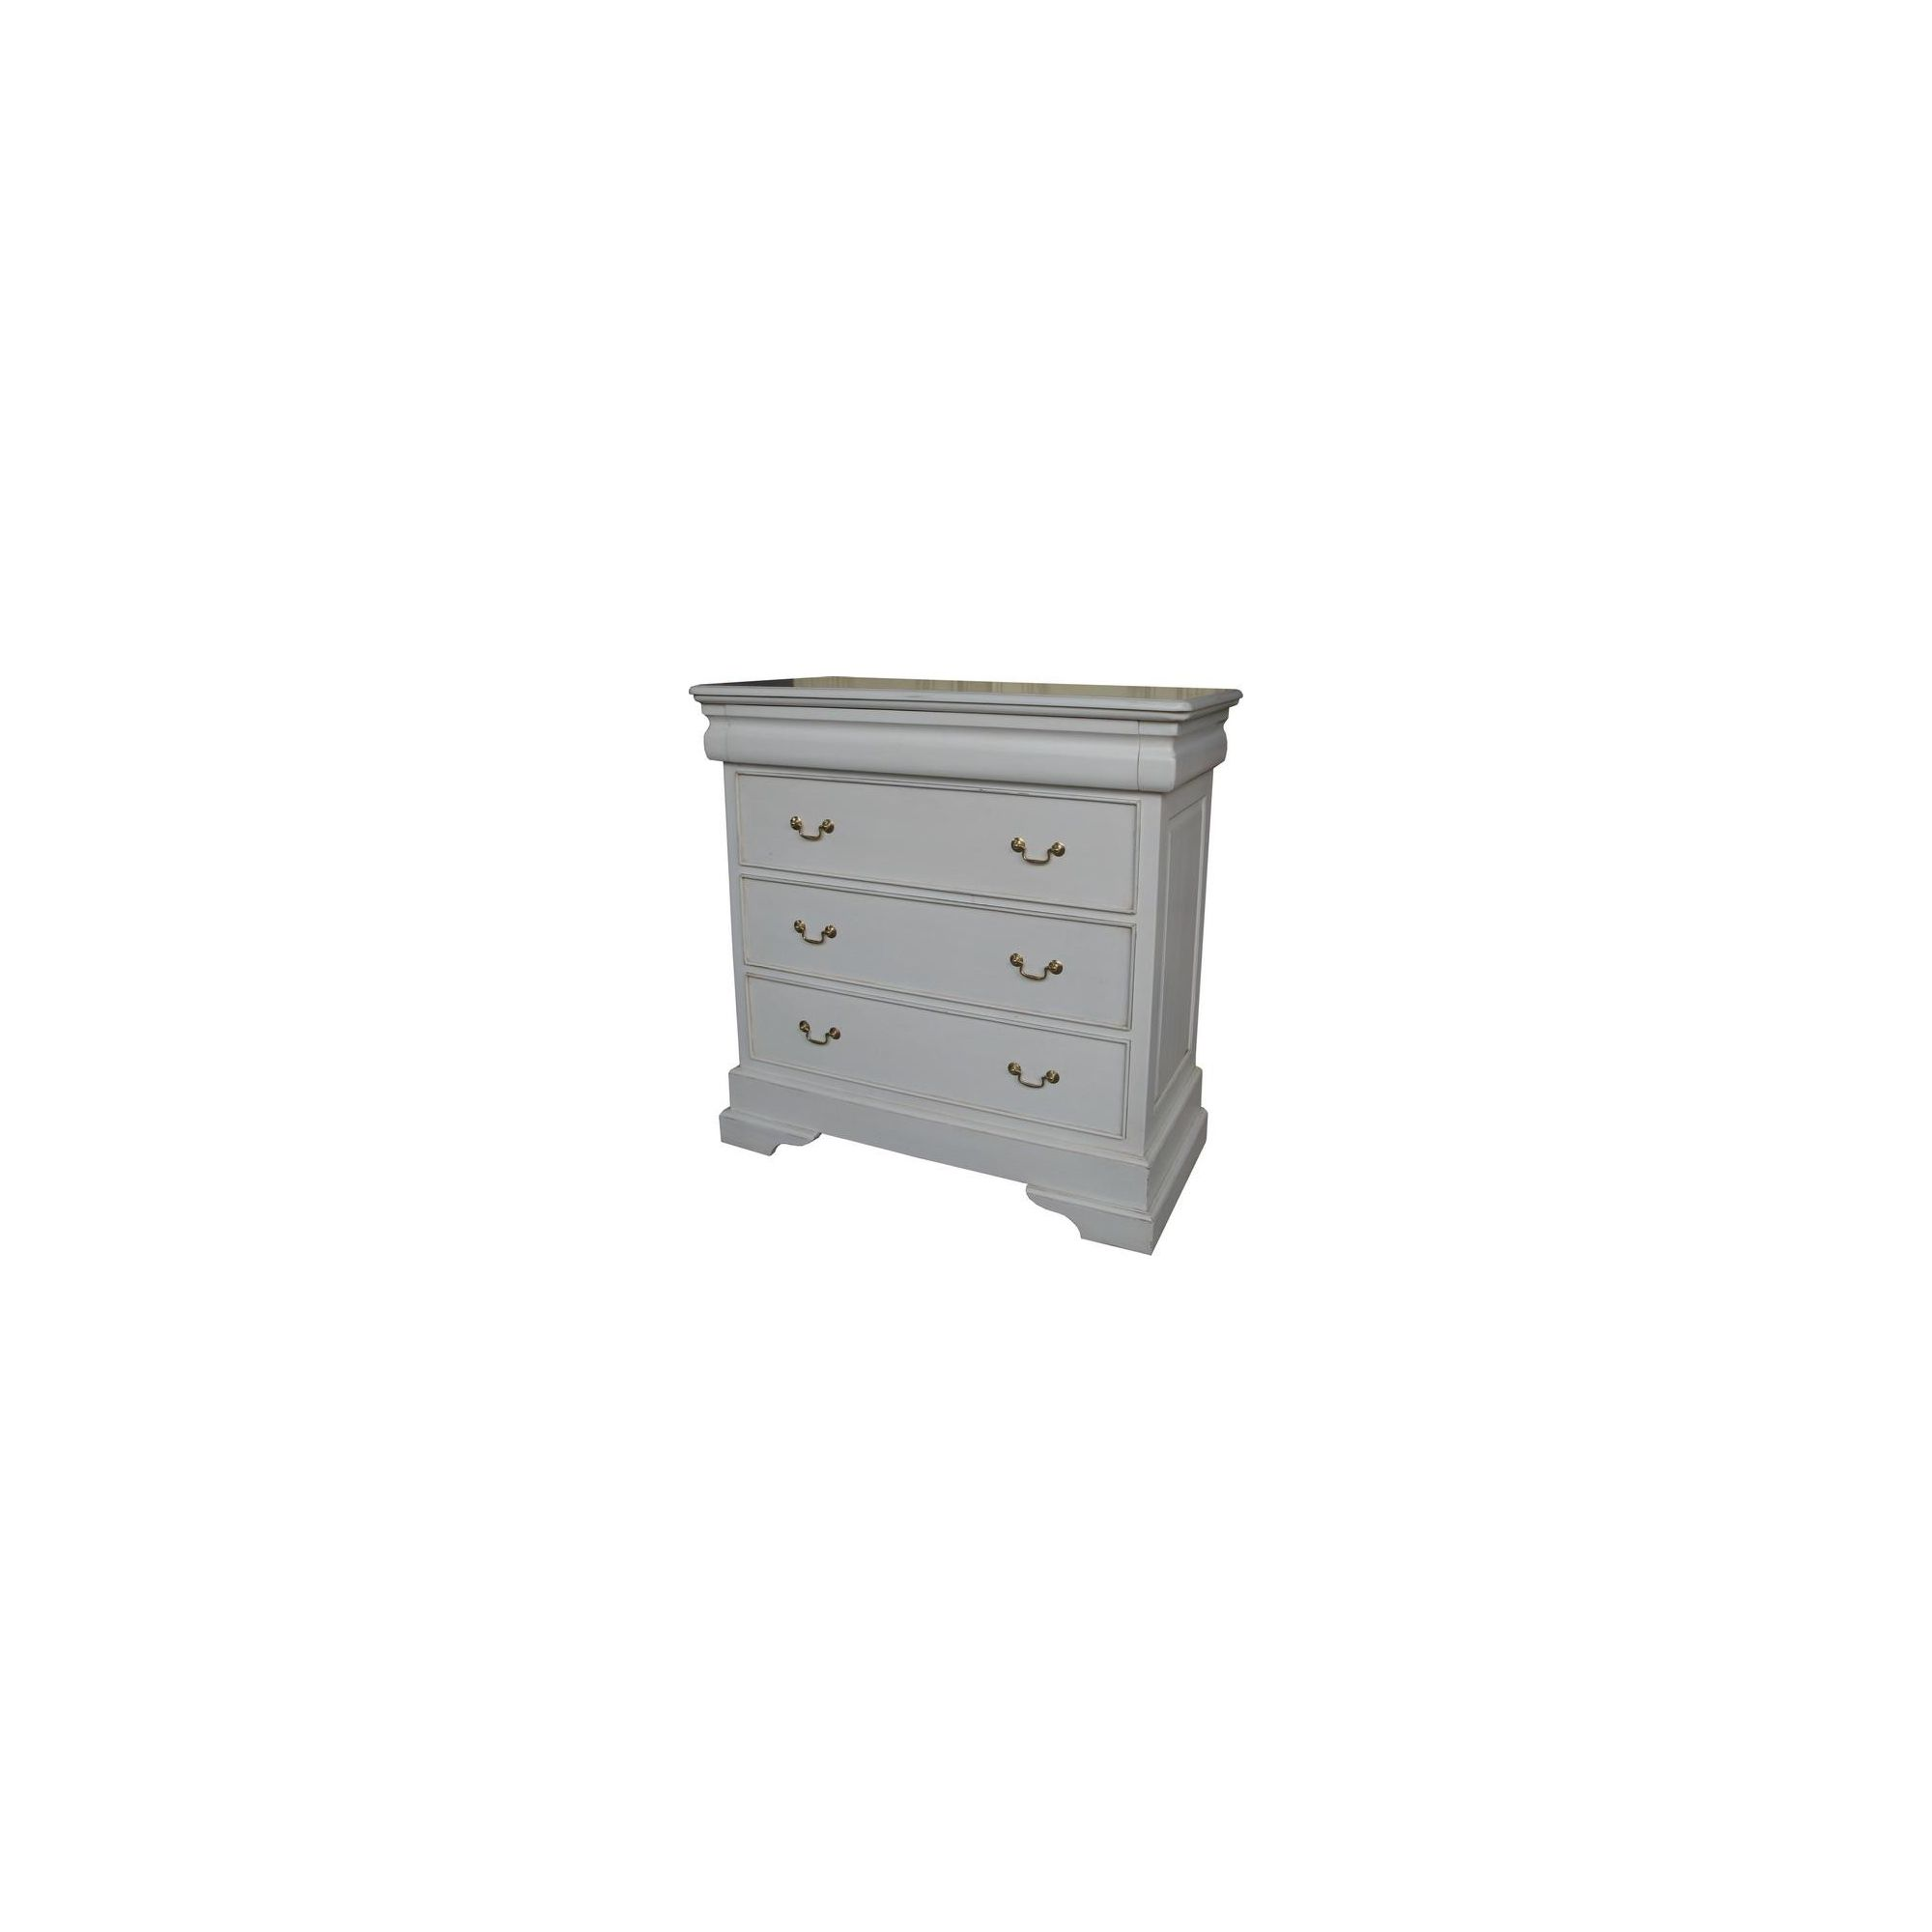 Lock stock and barrel Mahogany 3 Drawer Sleigh Chest - Antique White at Tesco Direct